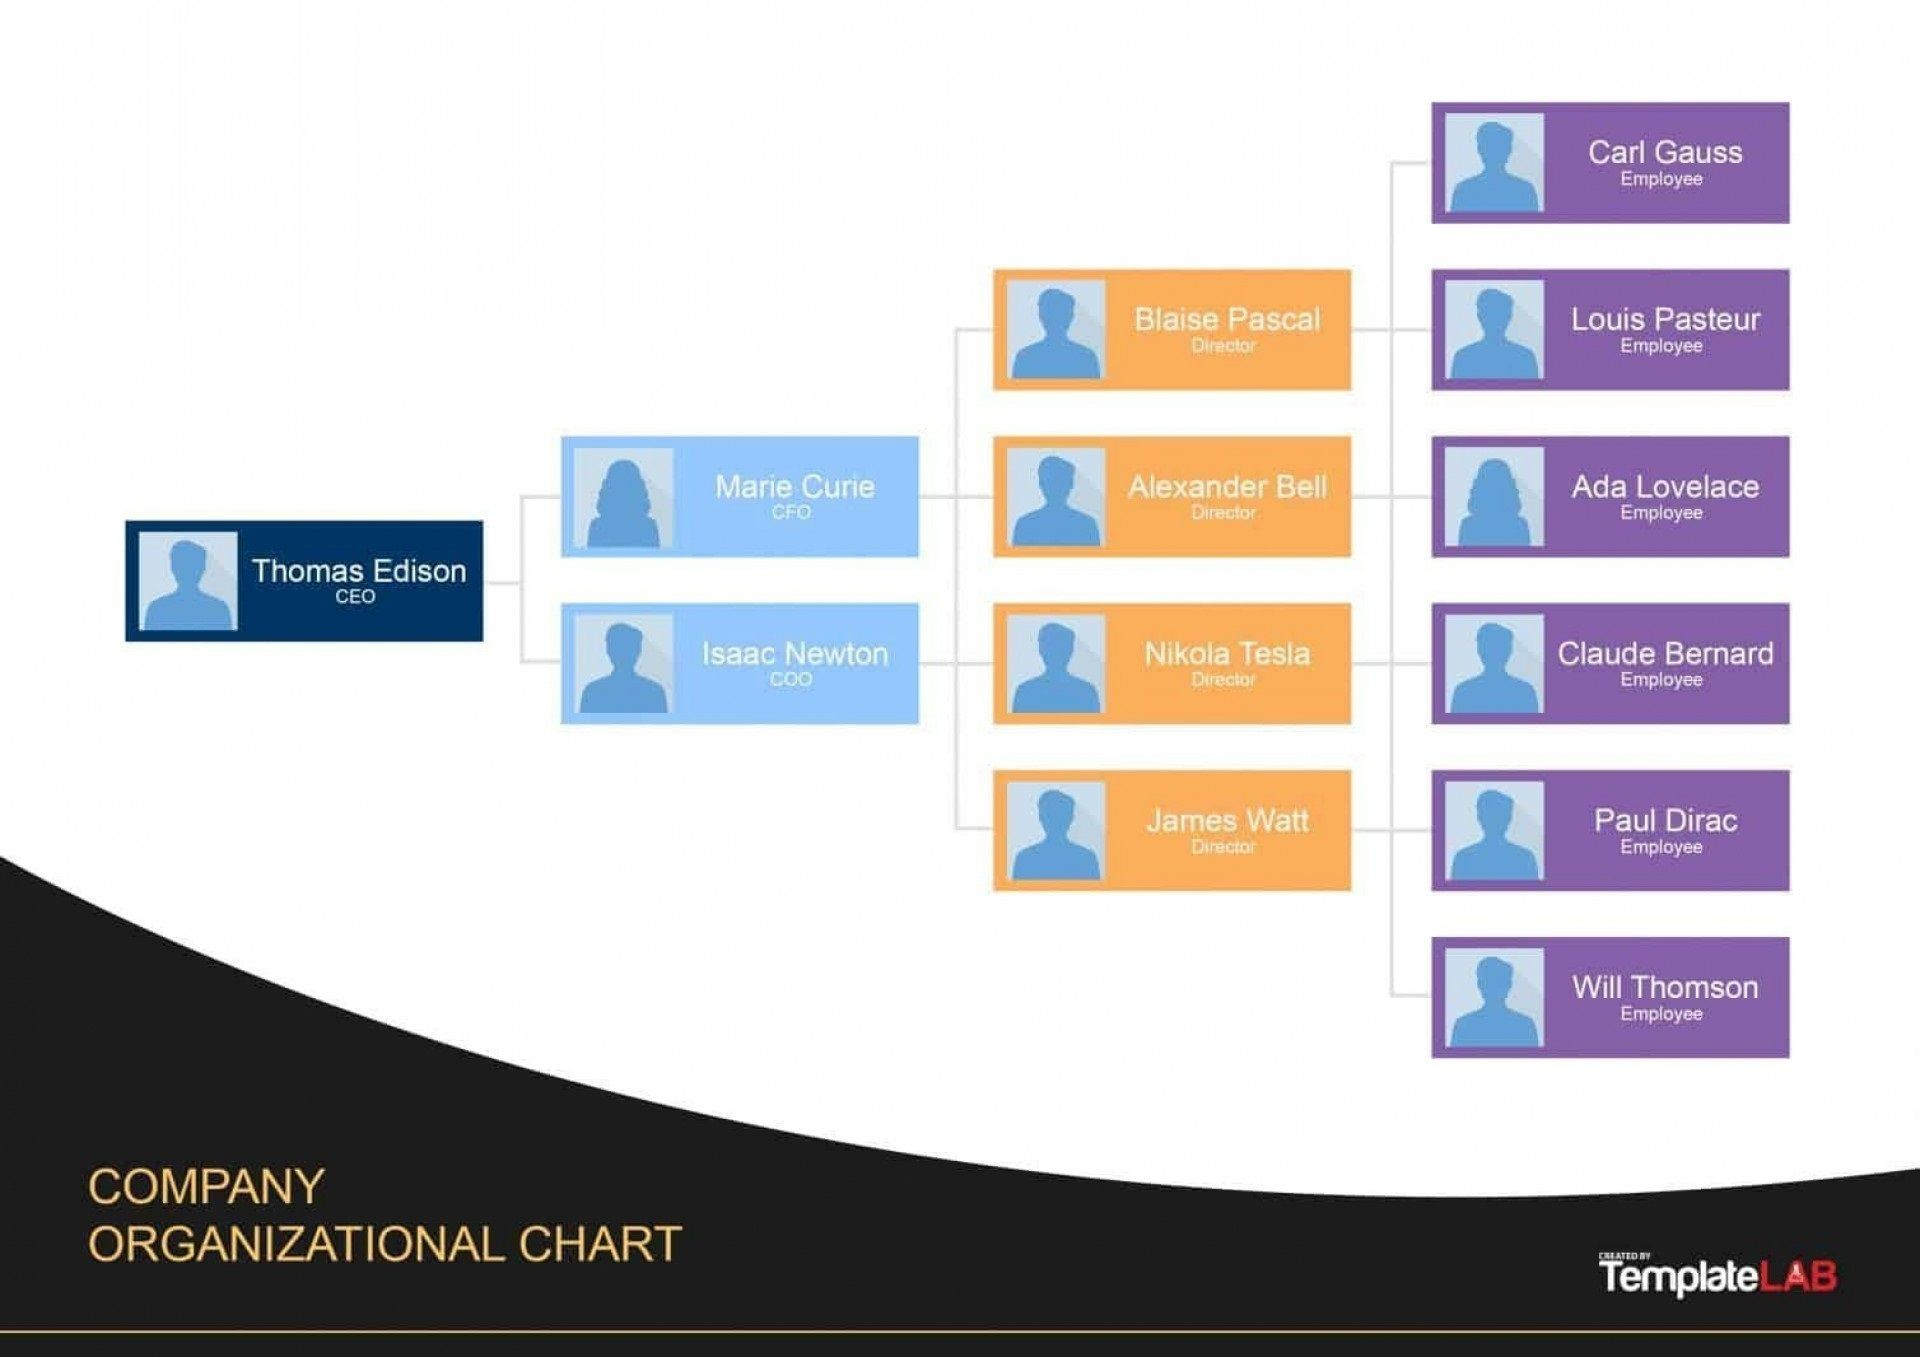 008 Marvelou Organization Chart Template Word 2013 Inspiration  Organizational Microsoft In1920